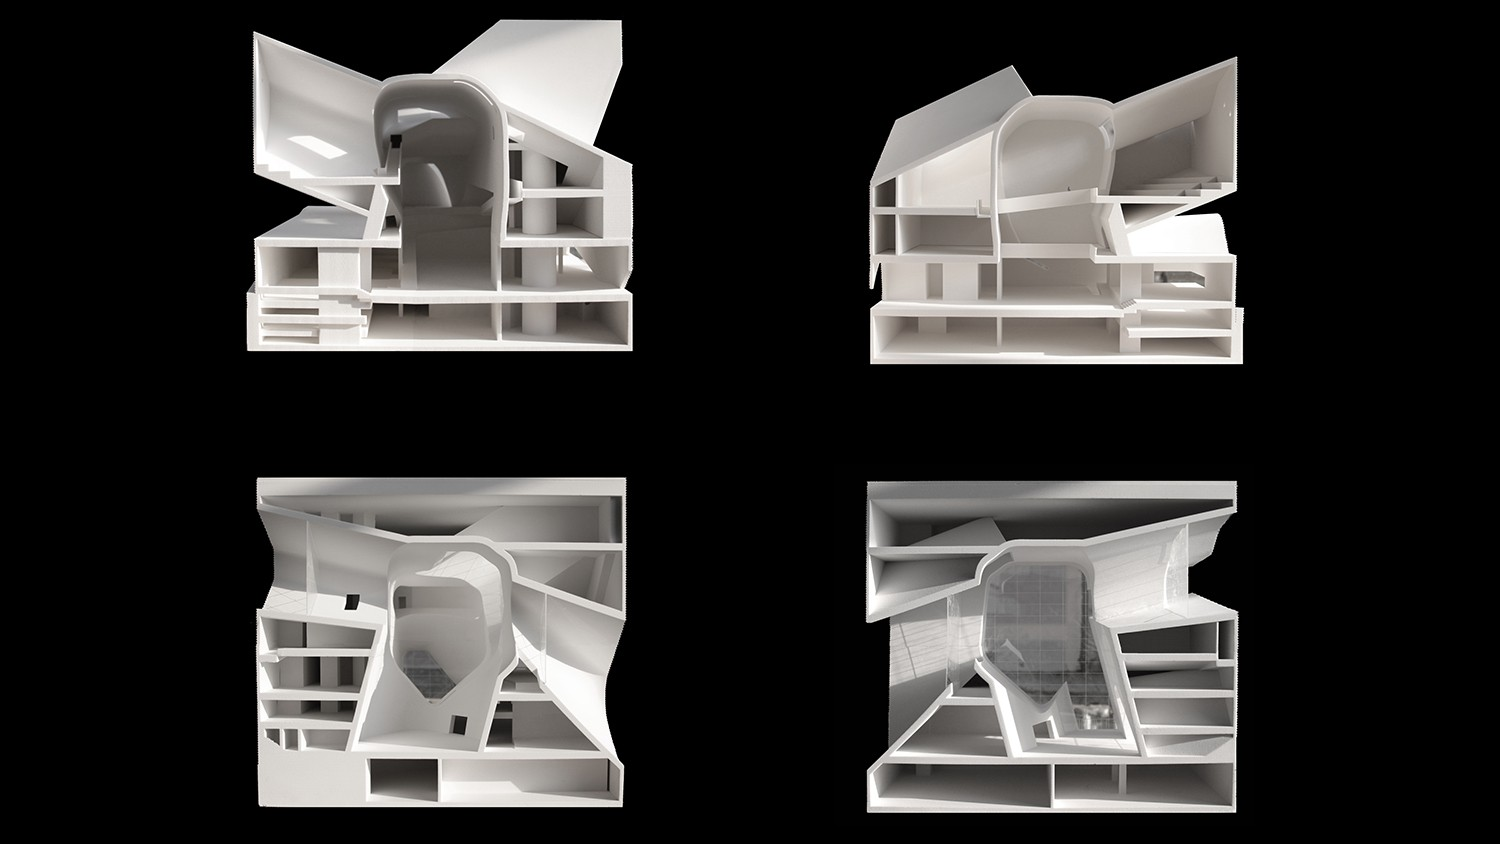 https://s3.us-east-2.amazonaws.com/steven-holl/uploads/projects/project-images/StevenHollArchitects_Tianjin_sectiongrouped_WH.jpg